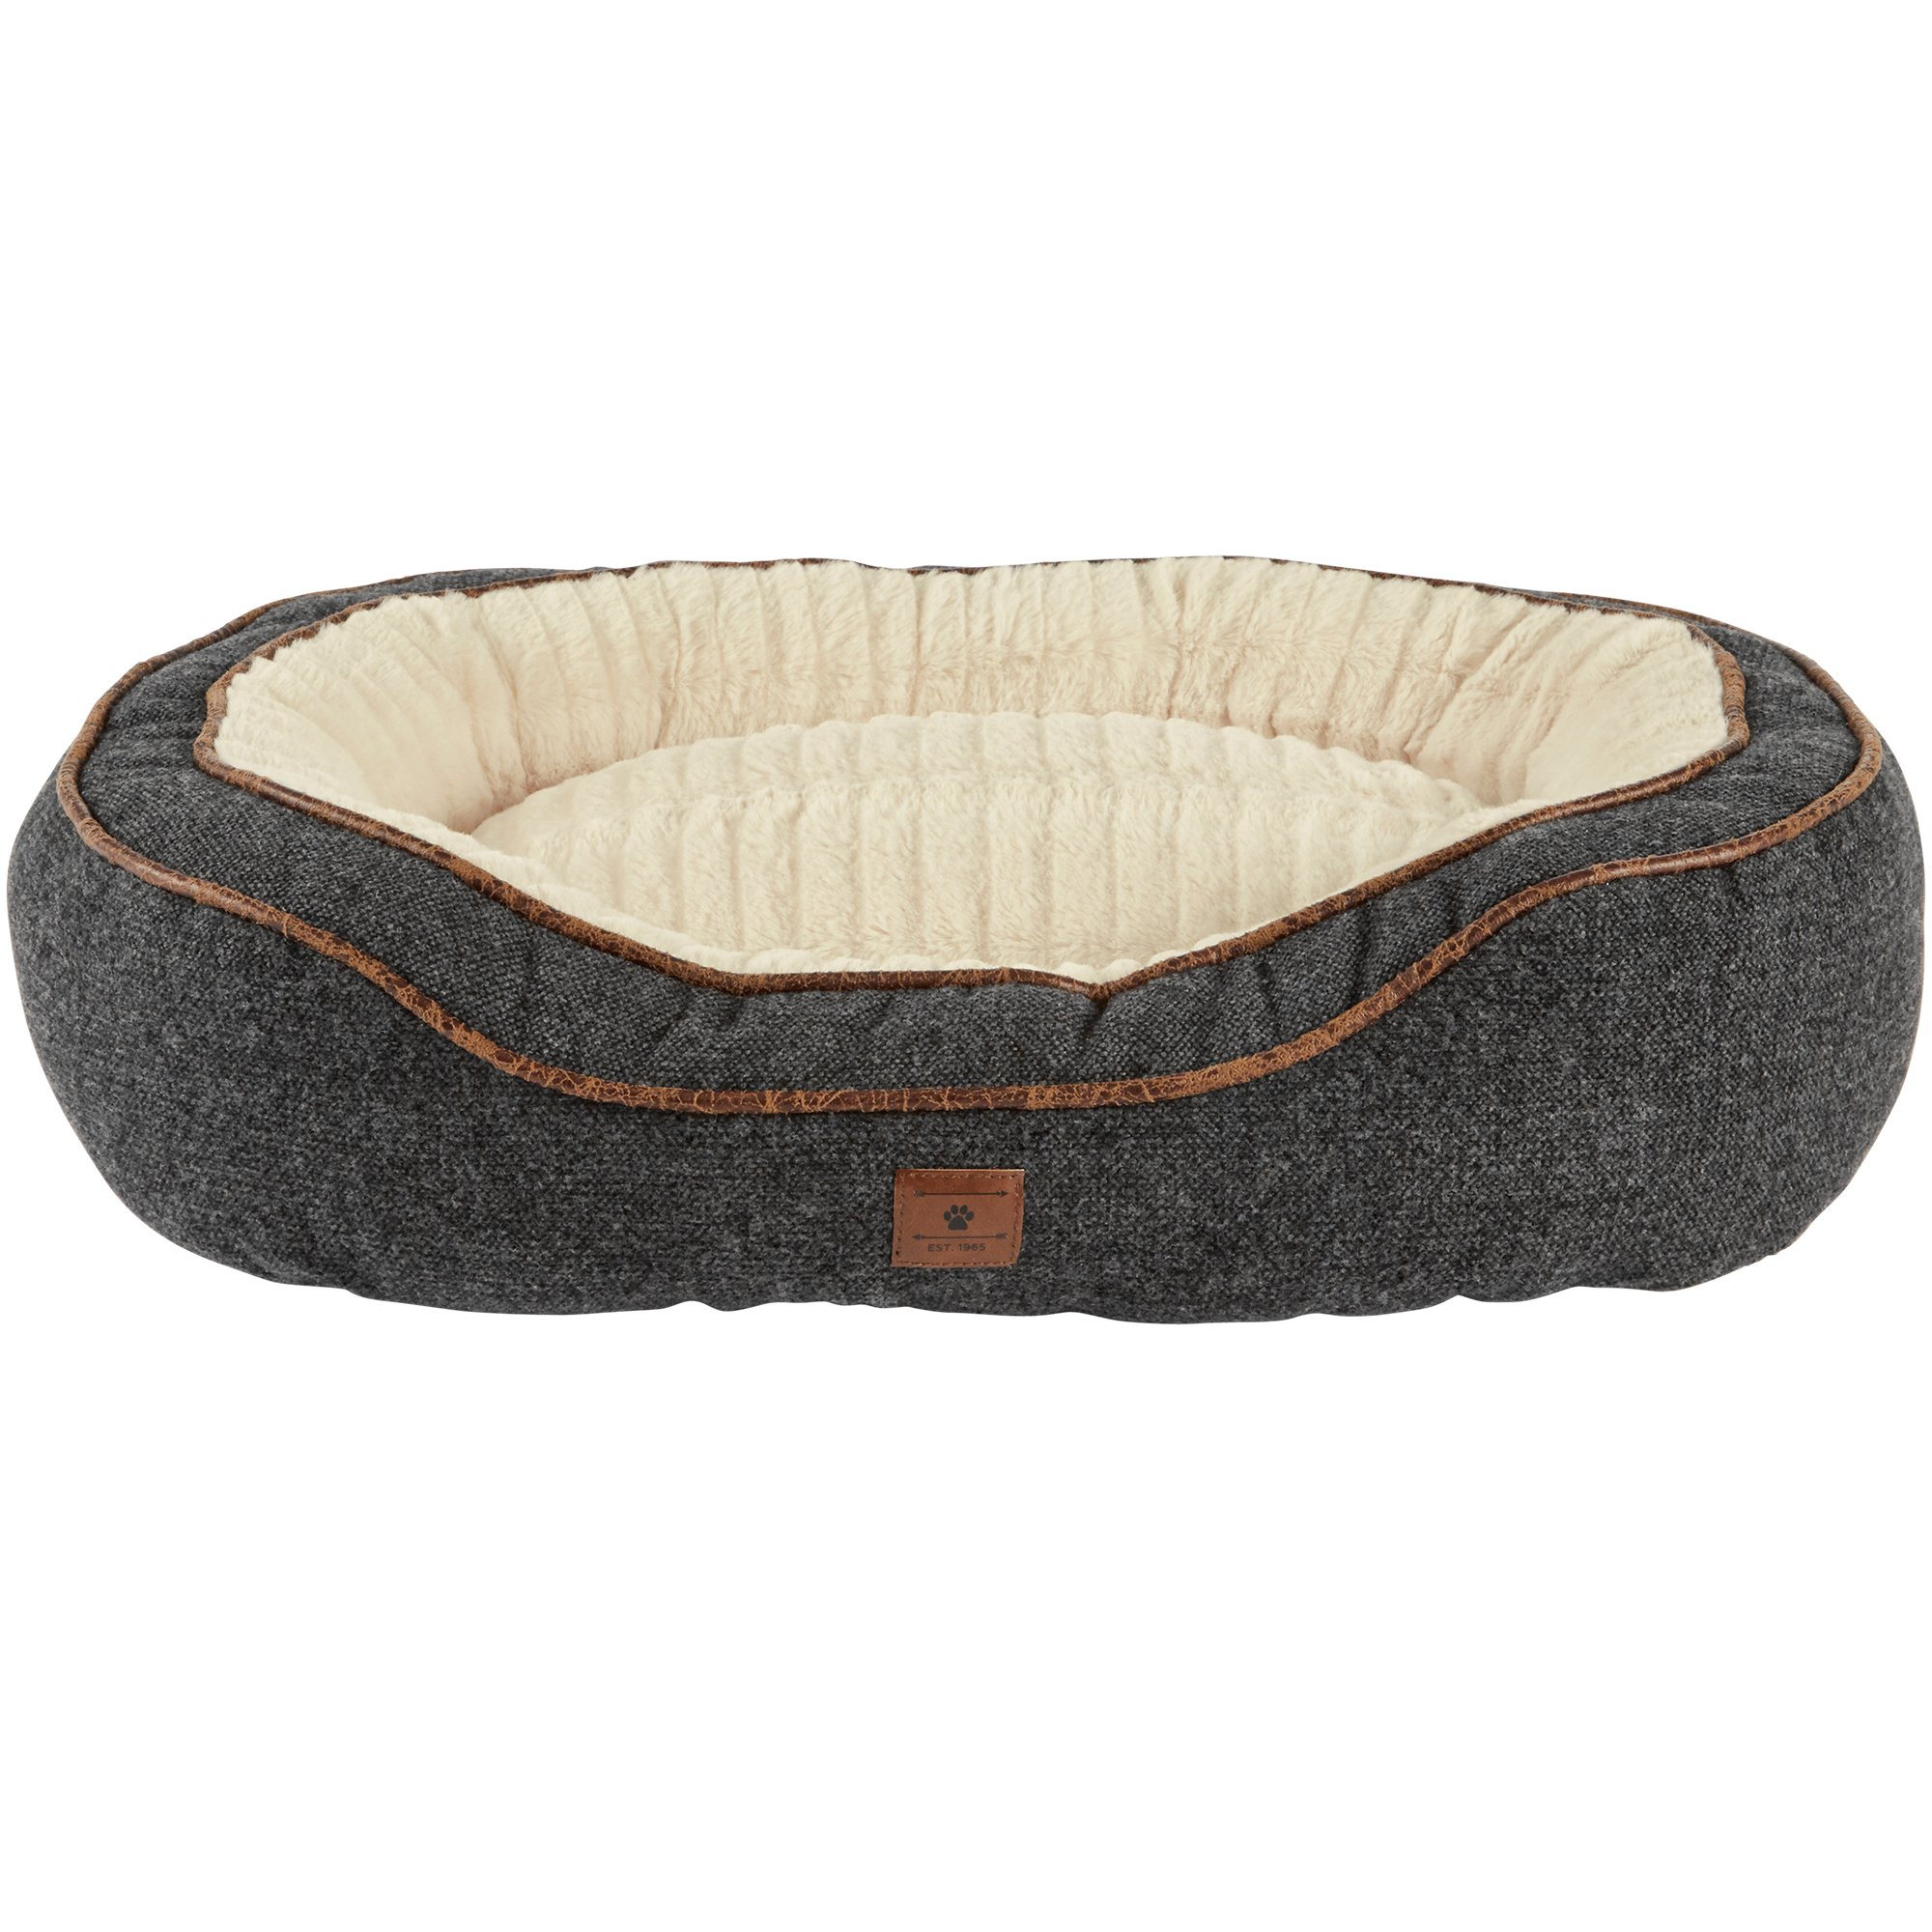 Save petco dog bed to get e-mail alerts and updates on your eBay Feed. + Items in search results. Petco Tranquil Cuddler Memory Foam Dog Bed in Grey. Brand New. $ to $ Petco Dog Beds. Petco Dog Beds with Removable Cover. Petco Machine Washable Dog Beds. Petco Memory Foam Dog Beds.